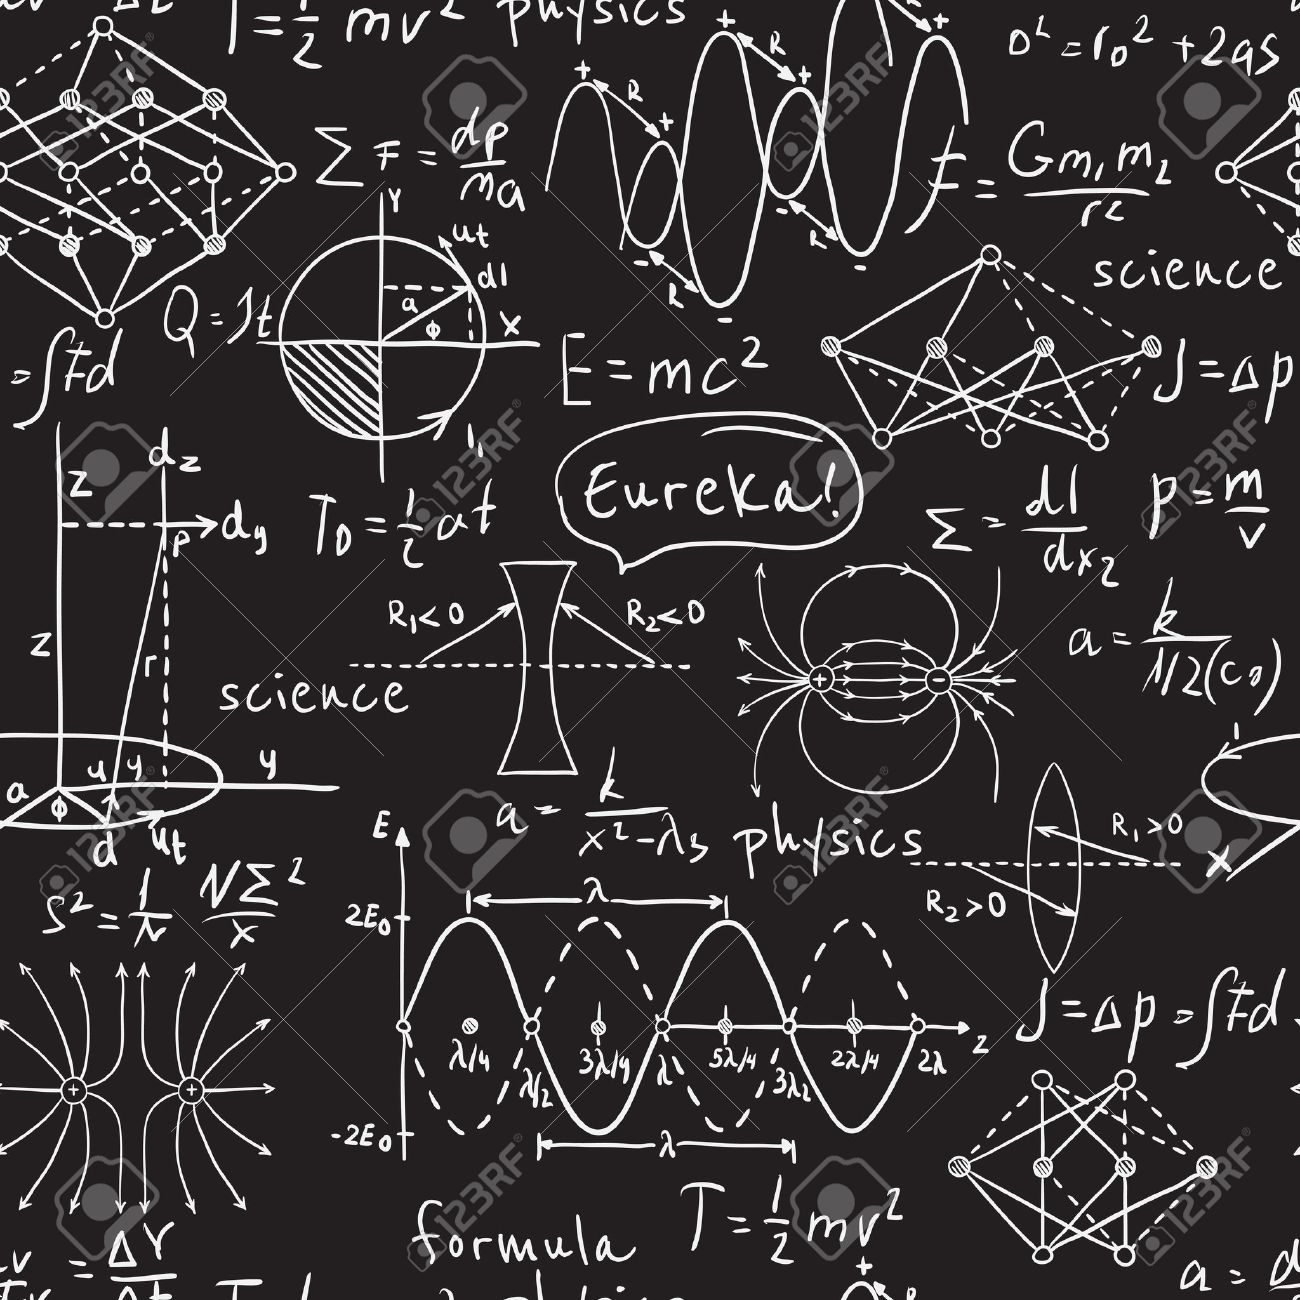 Physical formulas, graphics and scientific calculations on chalkboard. Vintage hand drawn illustration laboratory seamless pattern - 43922158